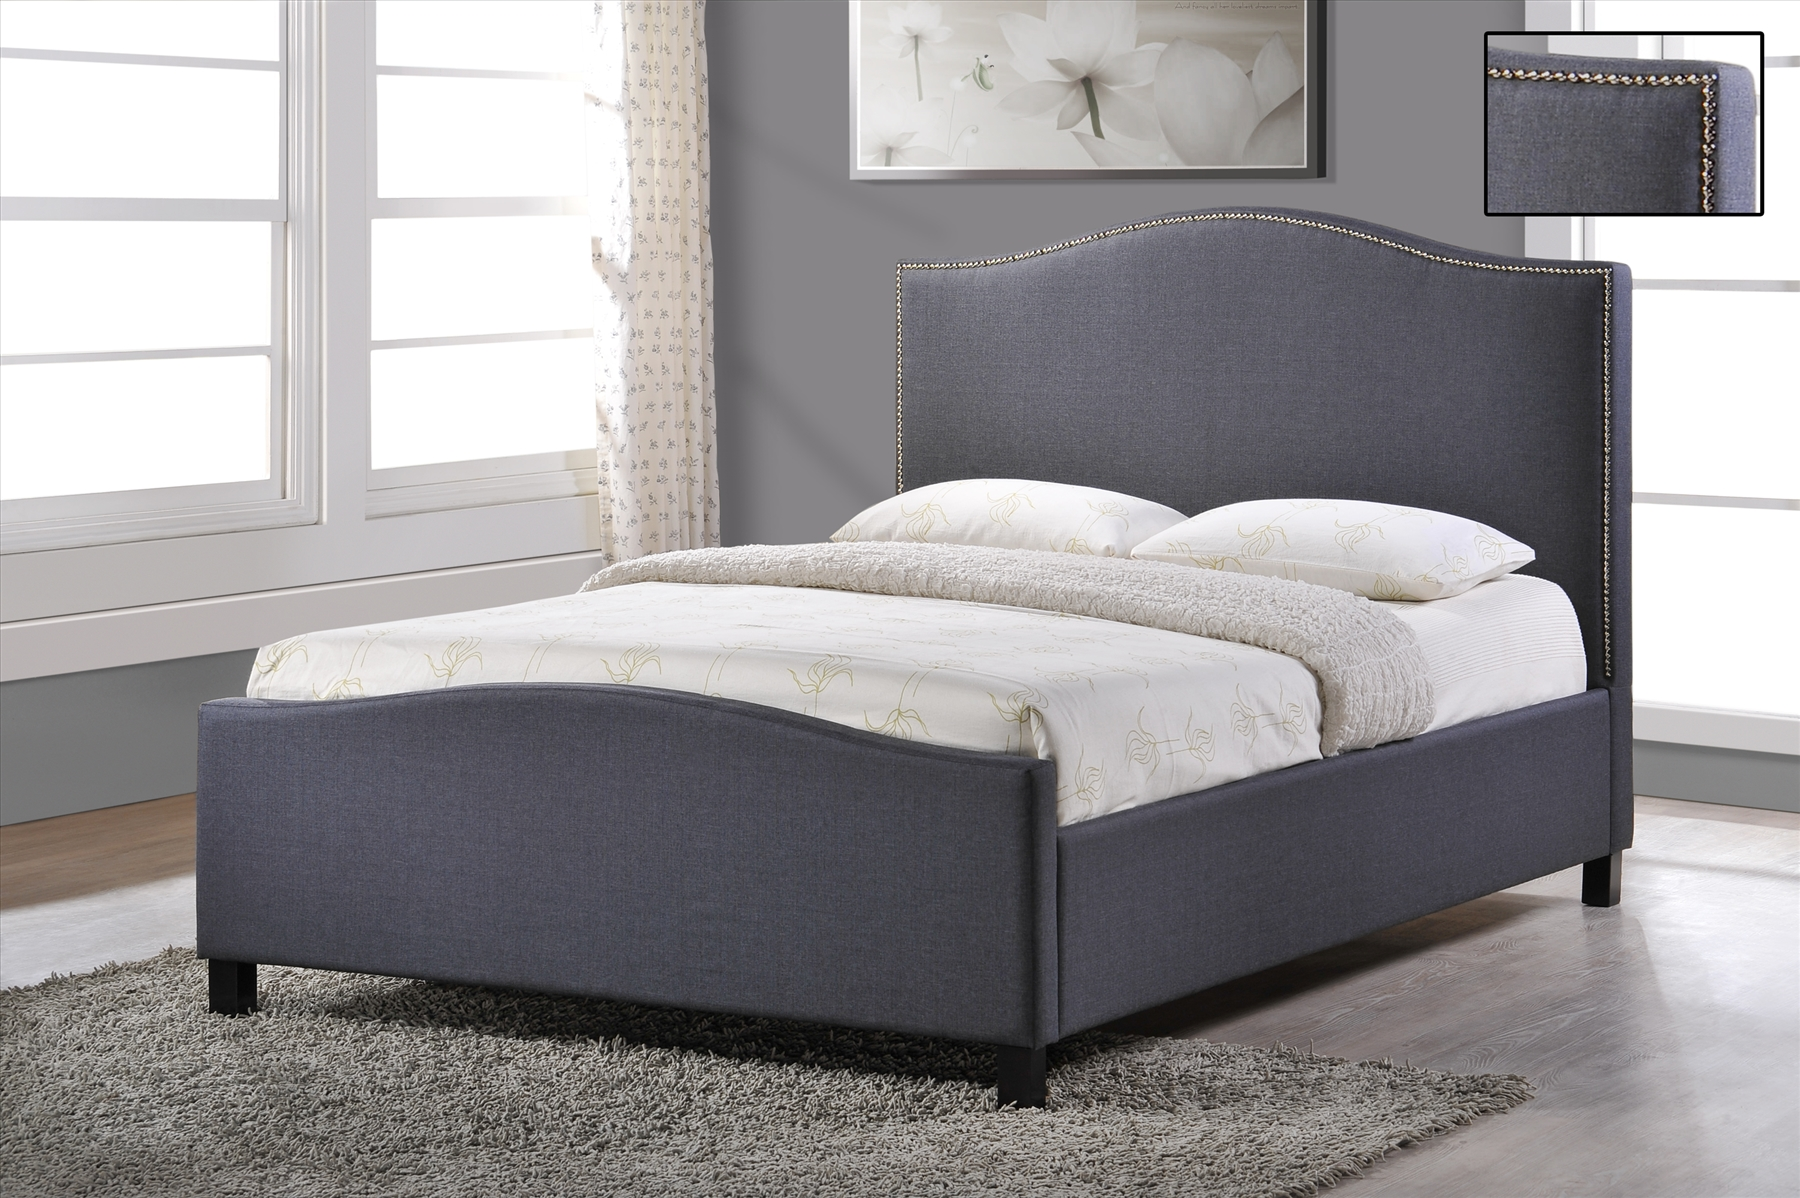 Stylish Fabric Upholstered Bed Frame Fabric Bed 4ft6